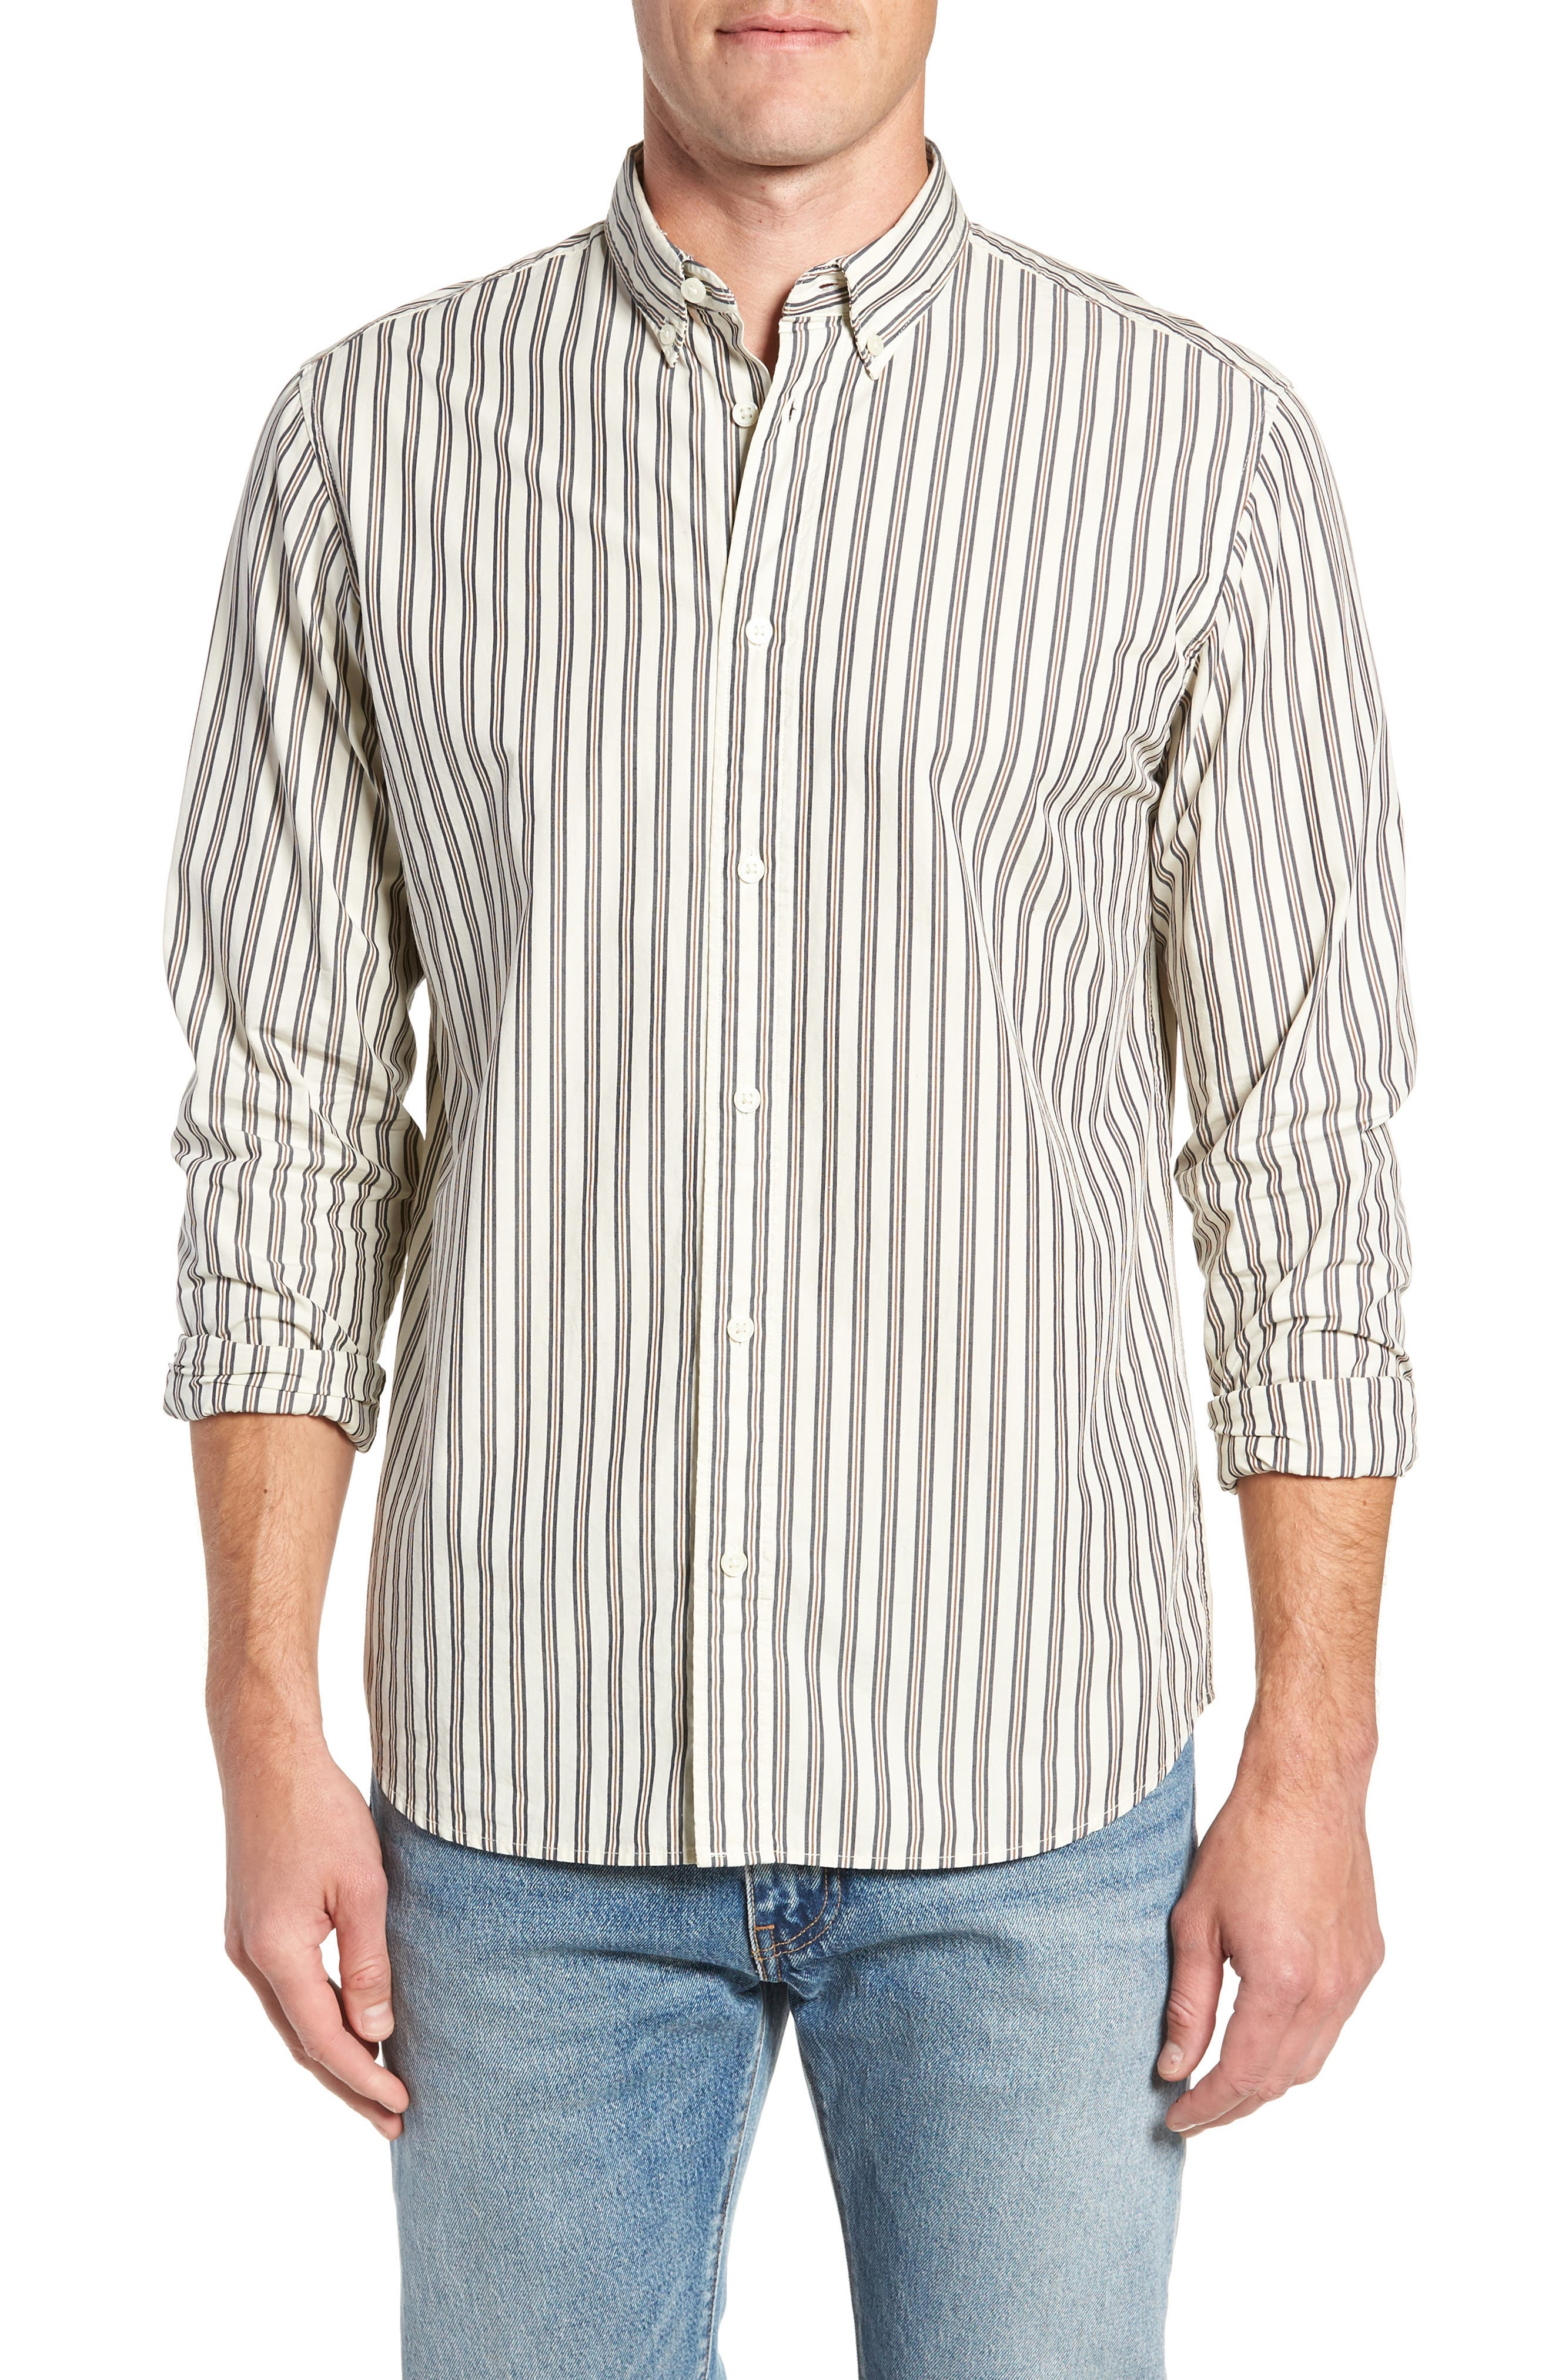 Carl Regular Fit Stripe Sport Shirt,                         Main,                         color, OYSTER GREY STRIPES